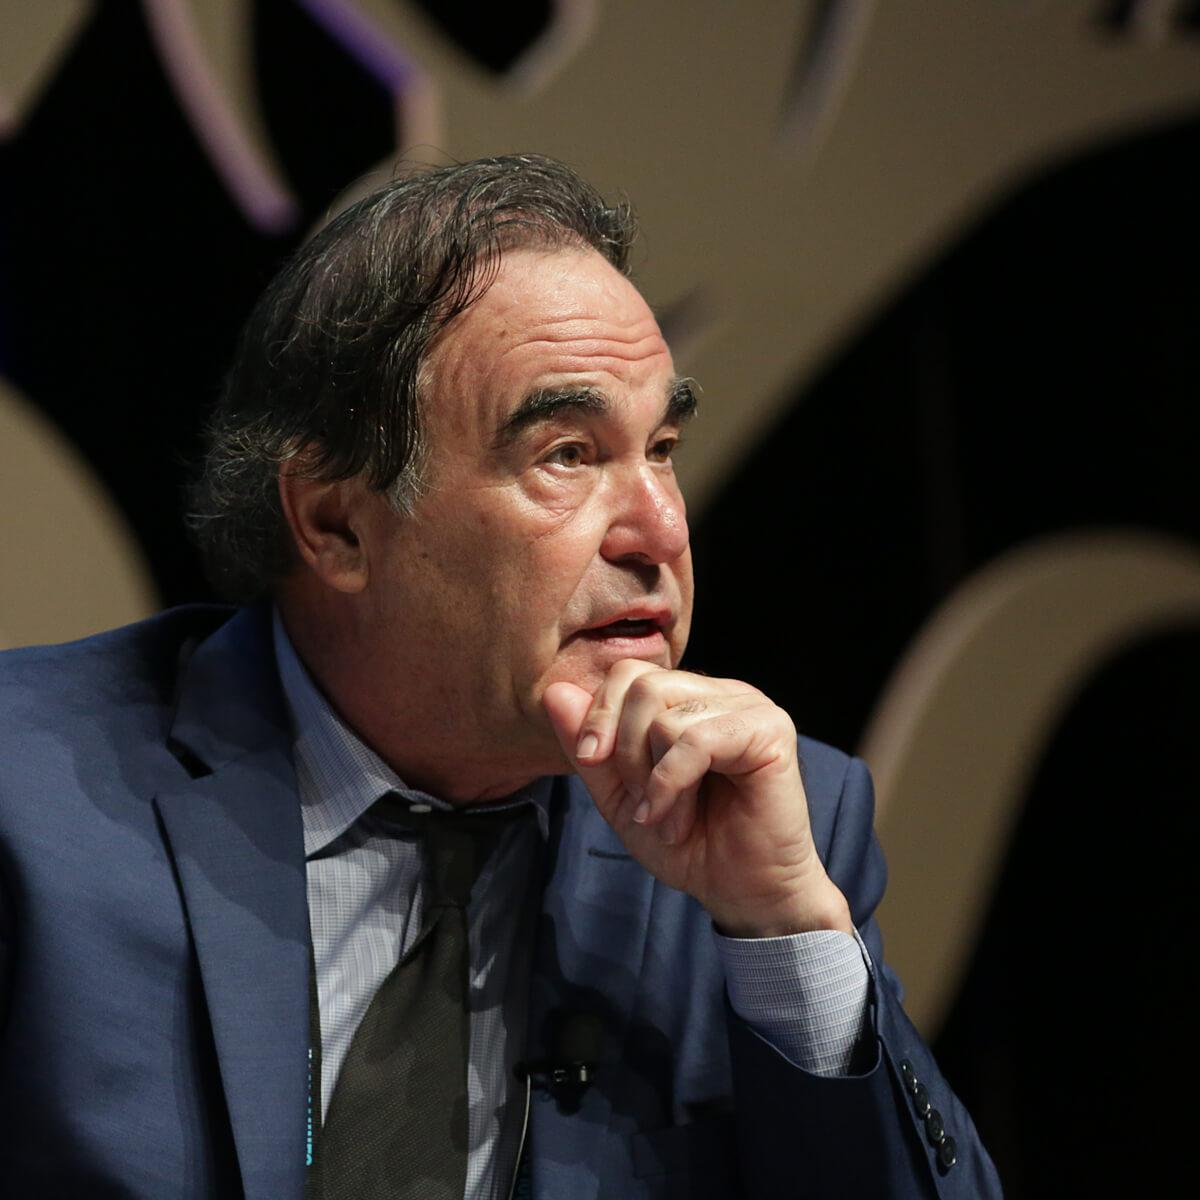 Portrait of American writer and filmmaker, Oliver Stone by photographer Julian Hanford